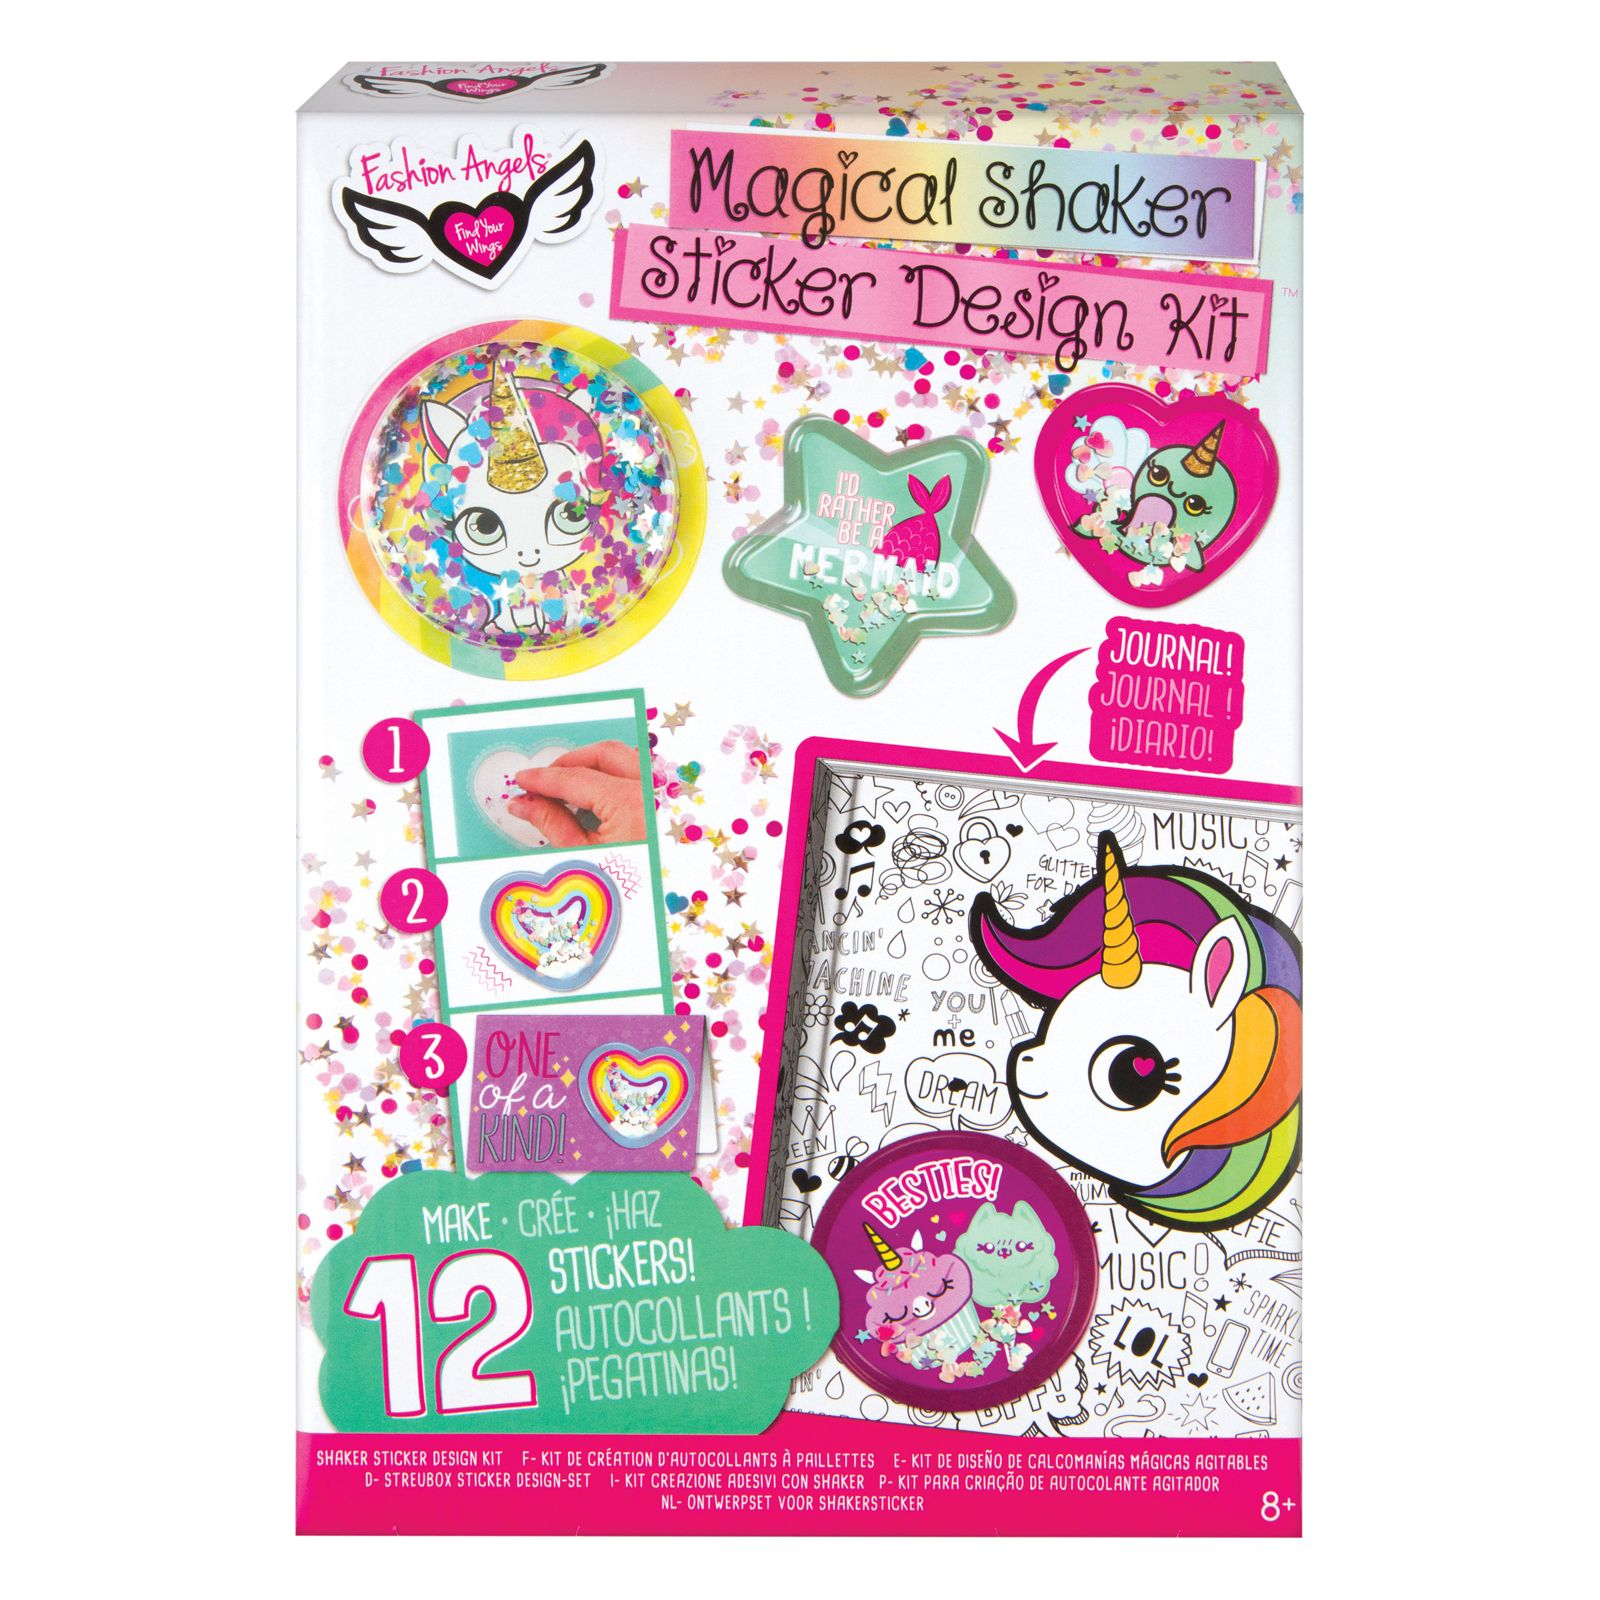 Fashion Angels Magical Sequin Shaker Sticker Design Kit Fashion Angels Sticker Design Sticker Kits